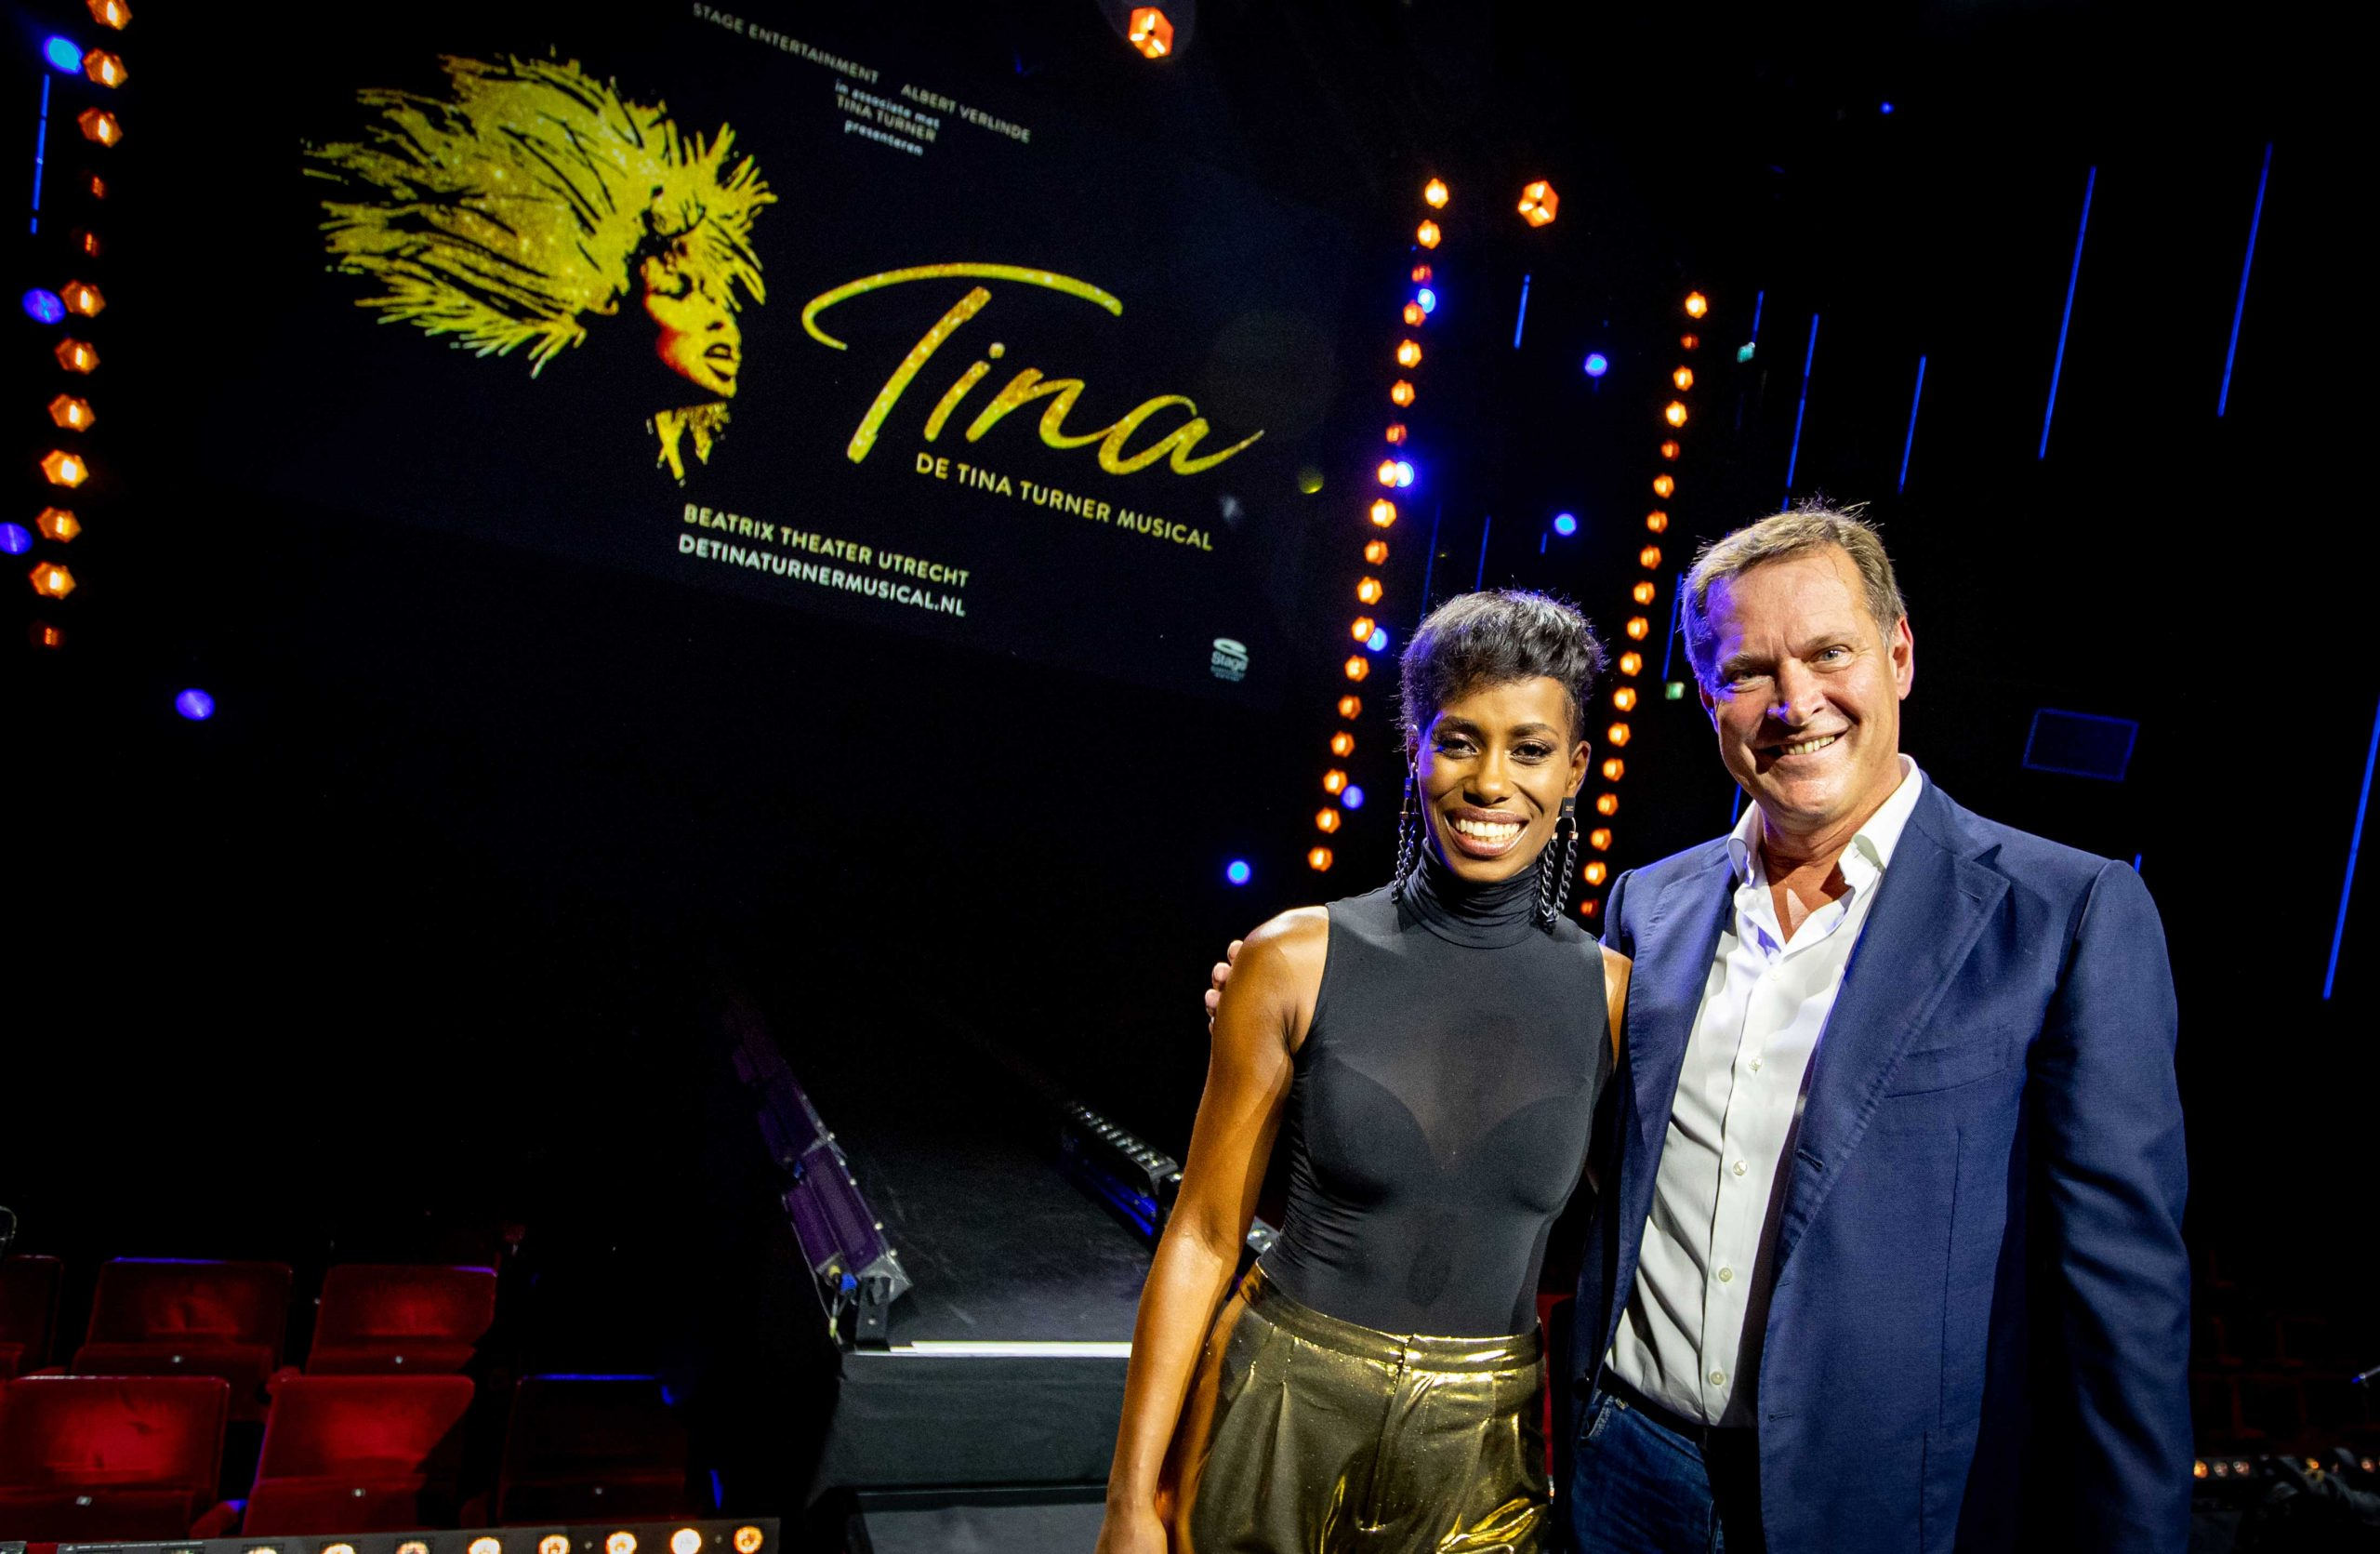 TINA-the-musical-over-Tina-Turner-met-producent-Albert-Verlinde-en-hoofdrolspeler-Nyassa-Alberta